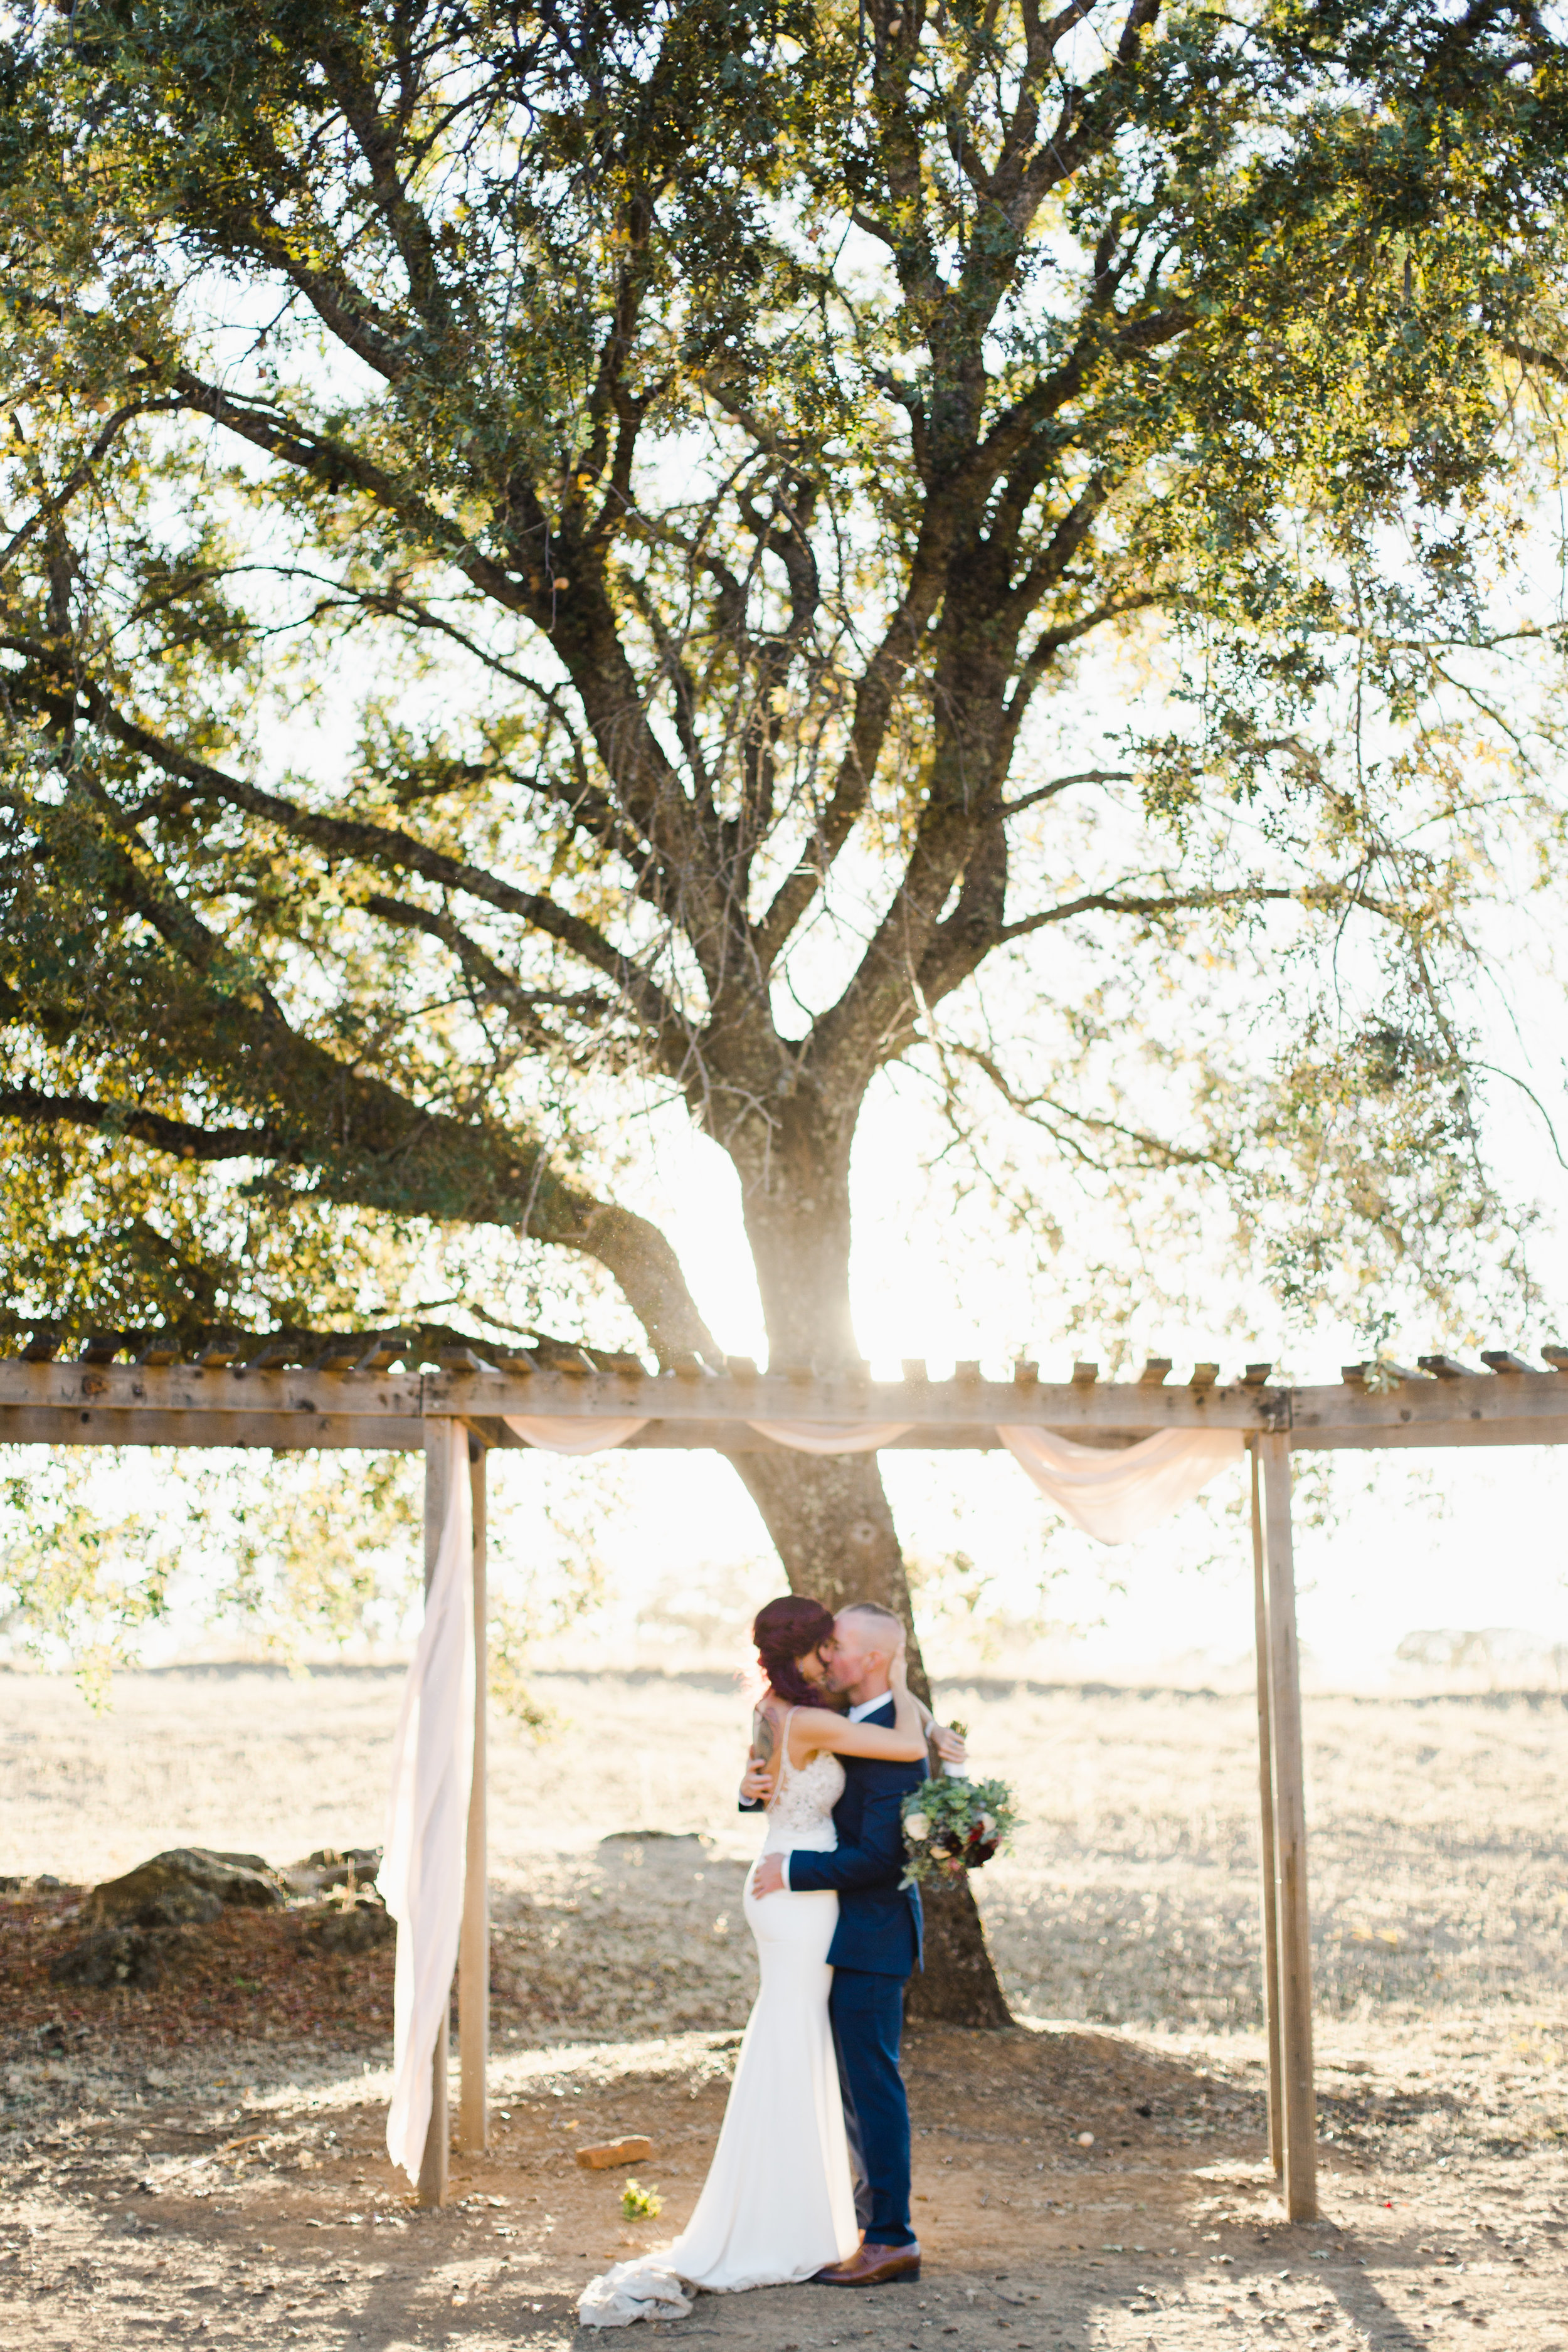 Katie+MikeMarried-IvoryBlushPhotography297.jpg